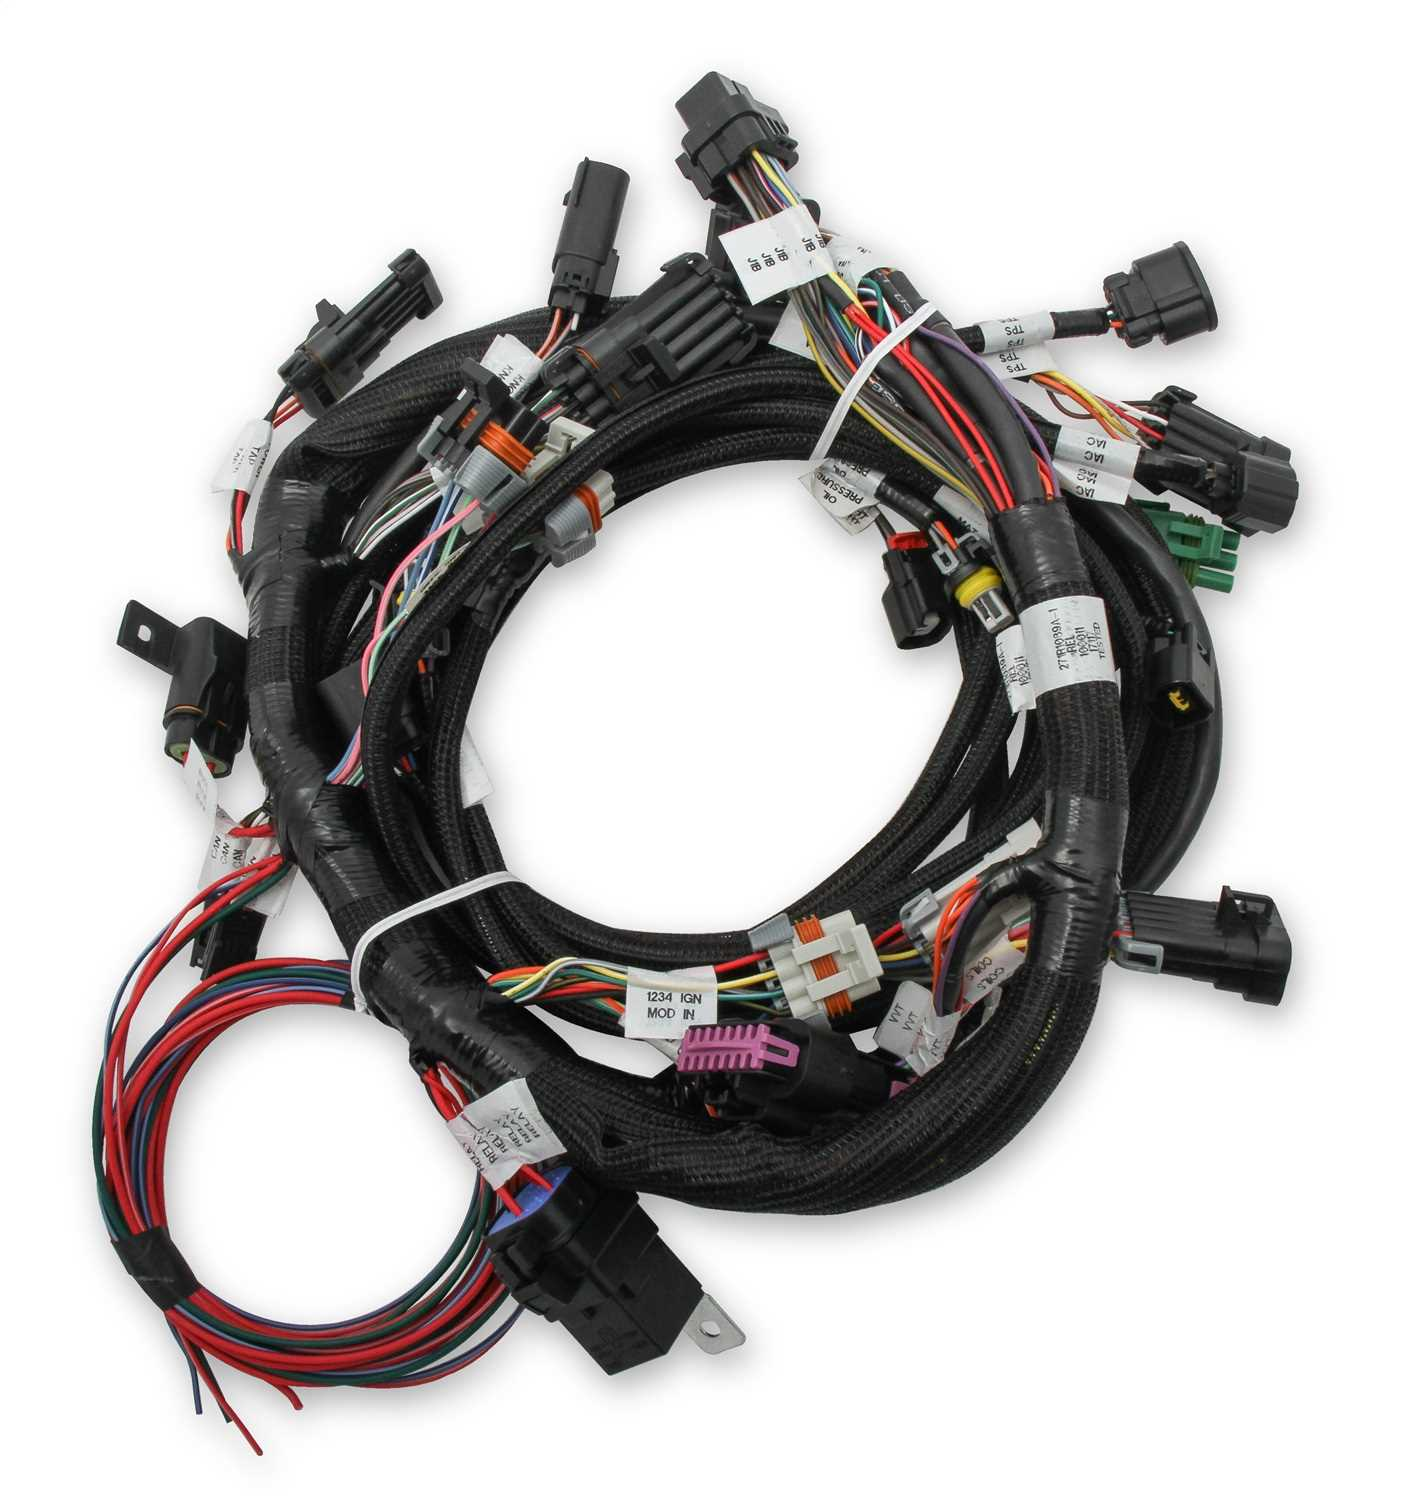 Holley EFI Ford Coyote TI-VCT Engine Main Wiring Harness- Tennessee on ford alternator connectors, ford wiring connectors, auto wiring plug connectors, ford coil connectors, different types of wire connectors, ford radio connectors, ignition wire connectors, ford terminal connectors, ford wire terminals,